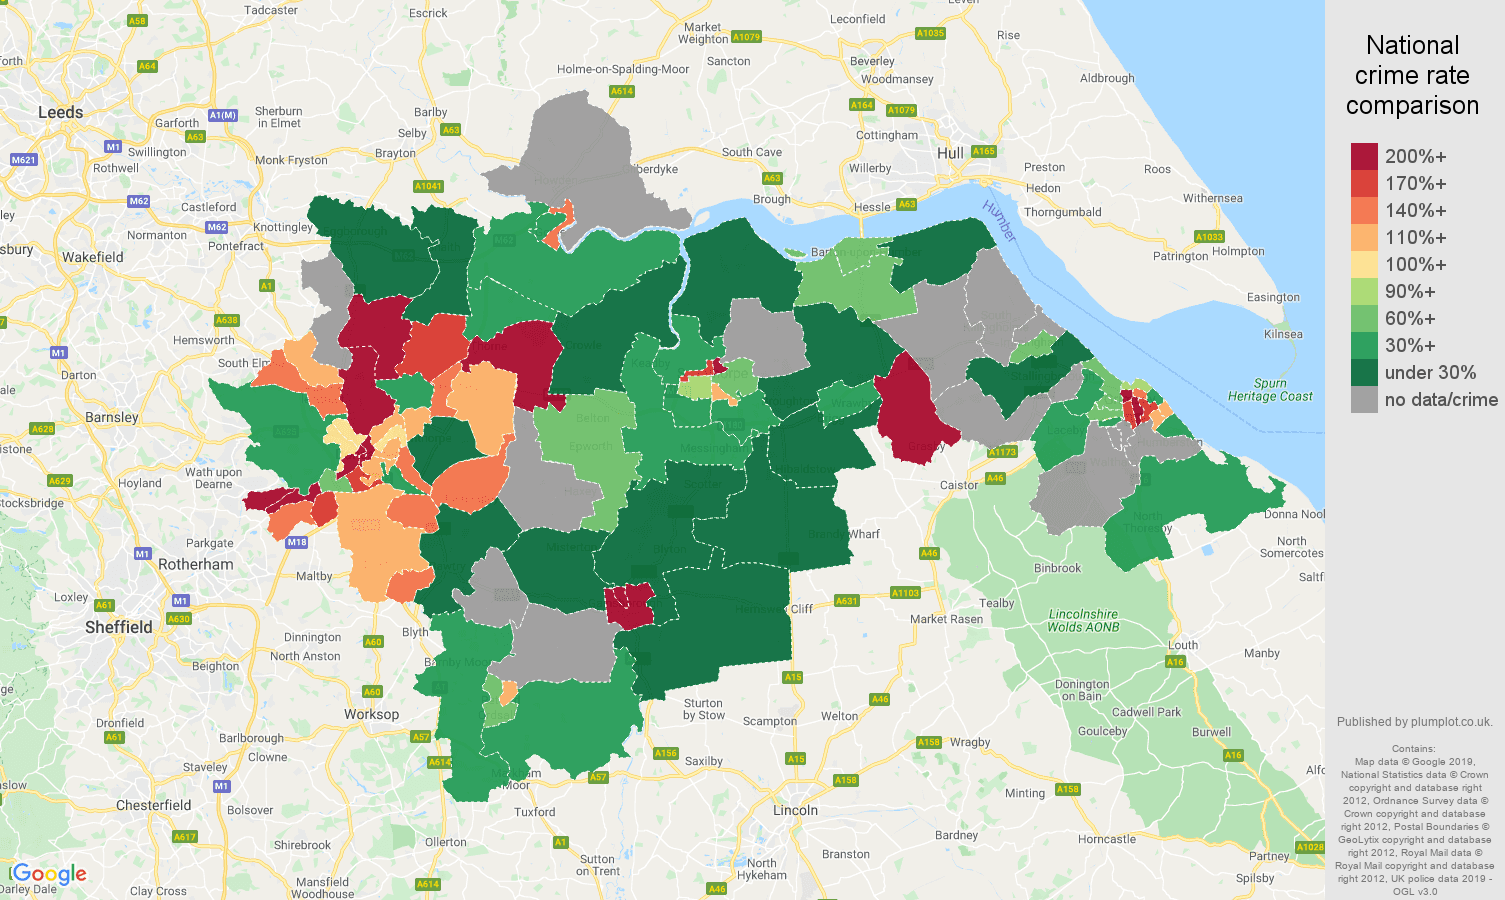 Doncaster possession of weapons crime rate comparison map